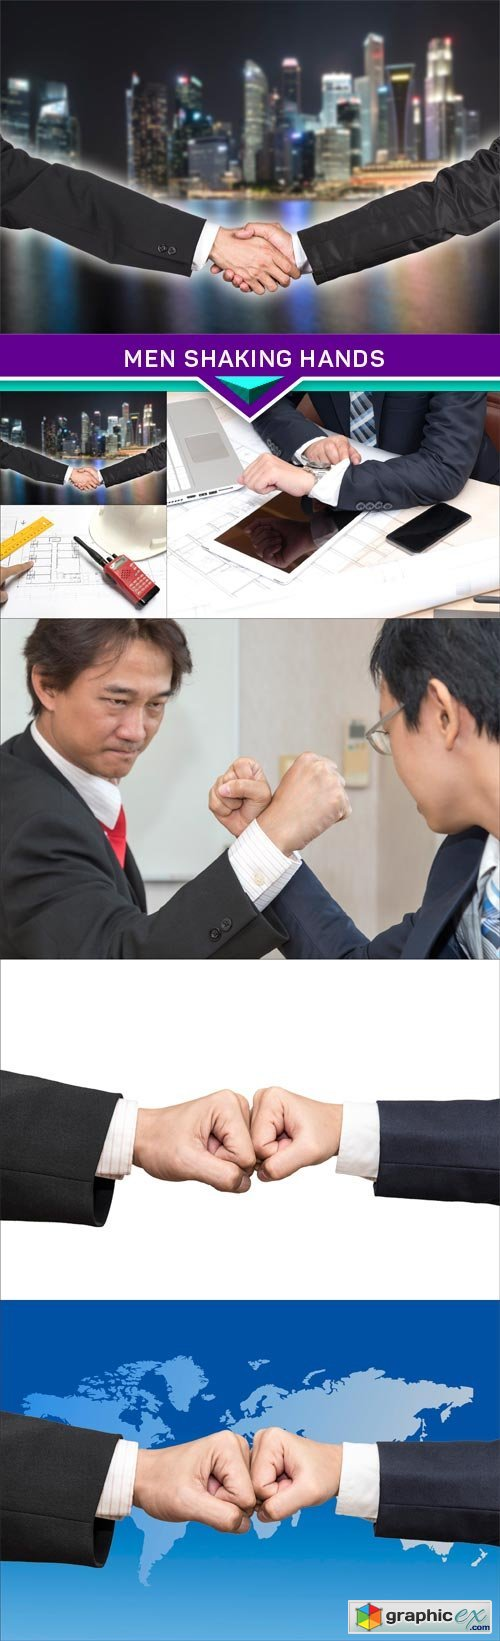 Men shaking hands, businessman 6X JPEG